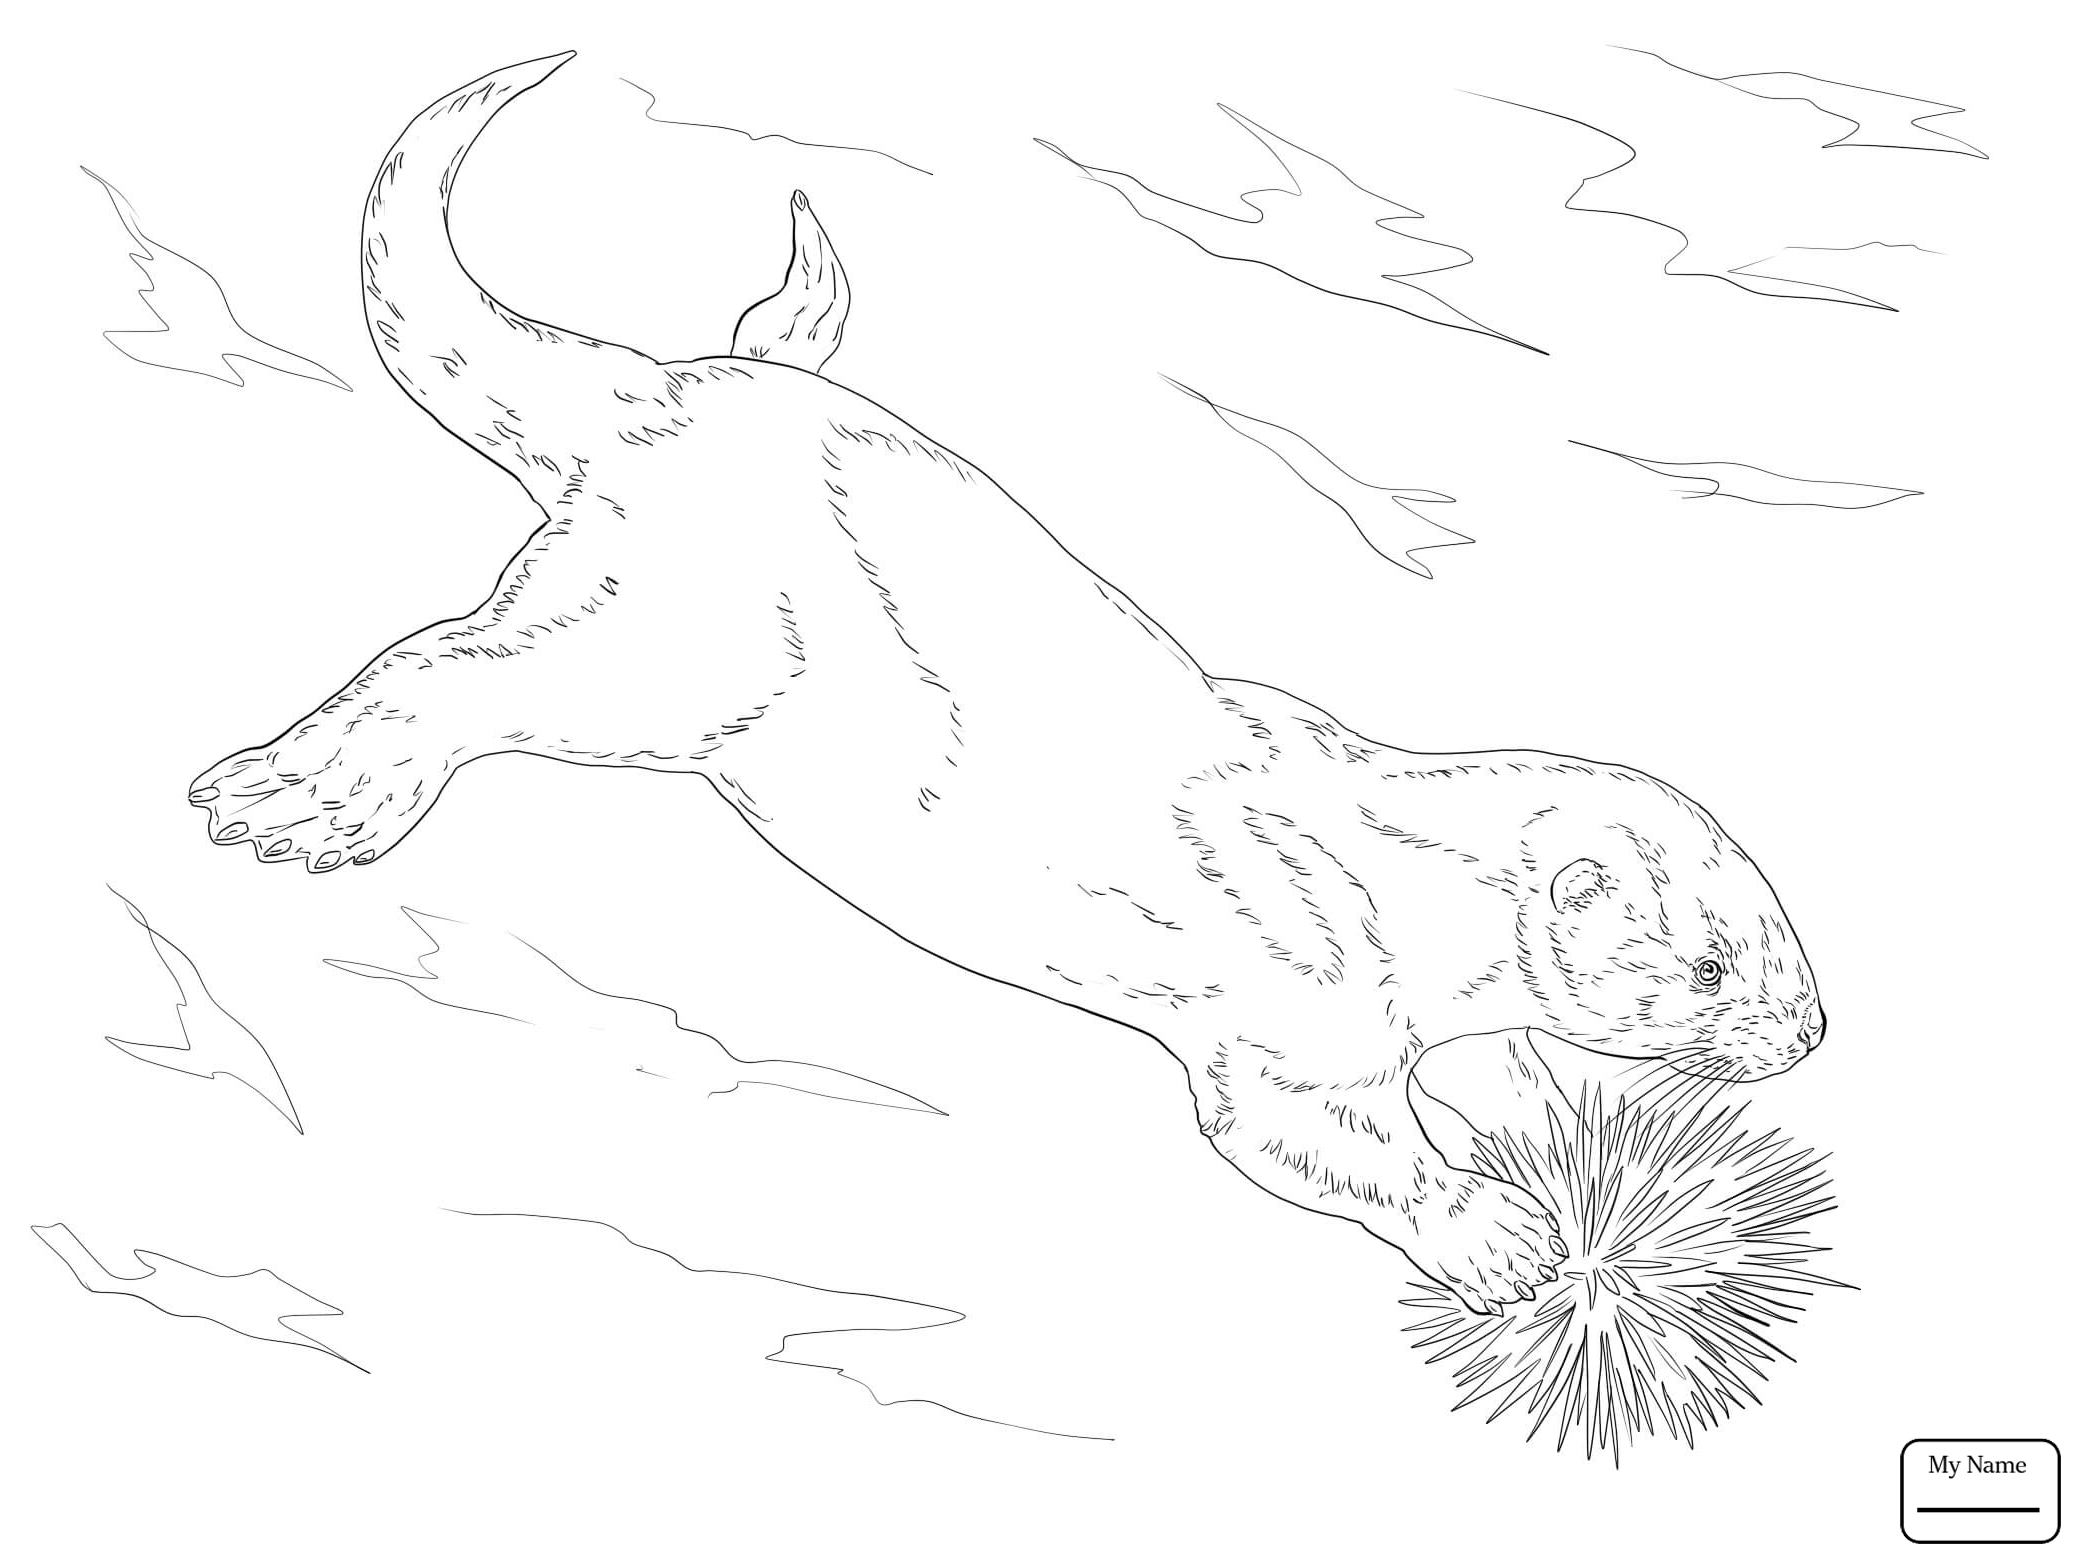 River Otter Drawing at GetDrawings.com | Free for personal use River ...